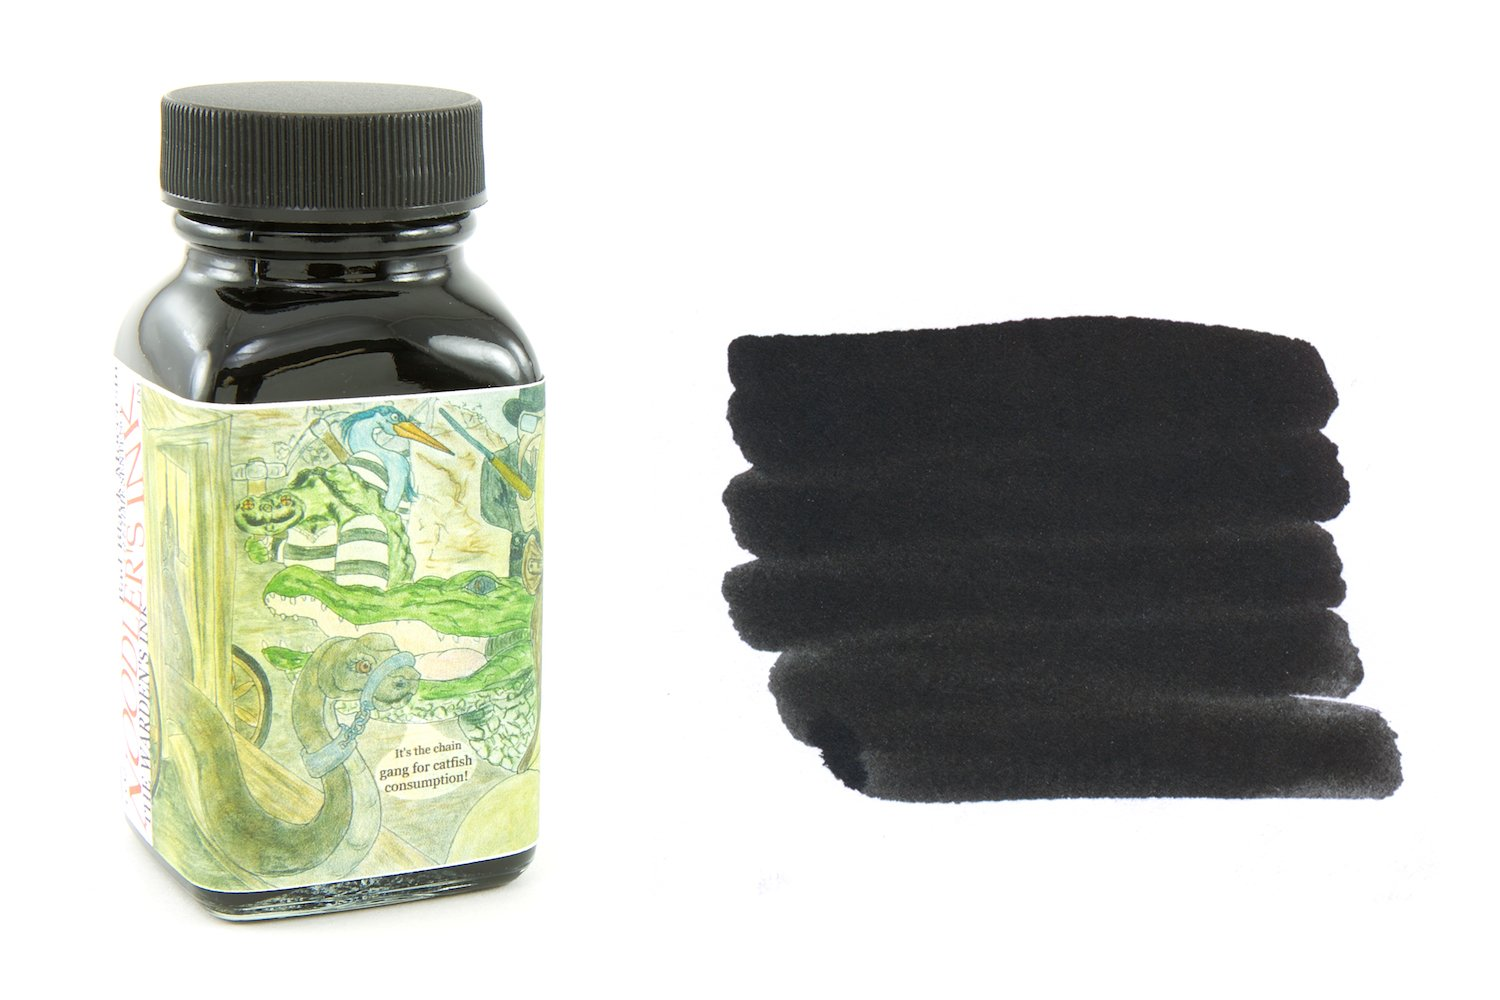 Noodler's Bad Black Moccasin - 3oz Bottled Ink